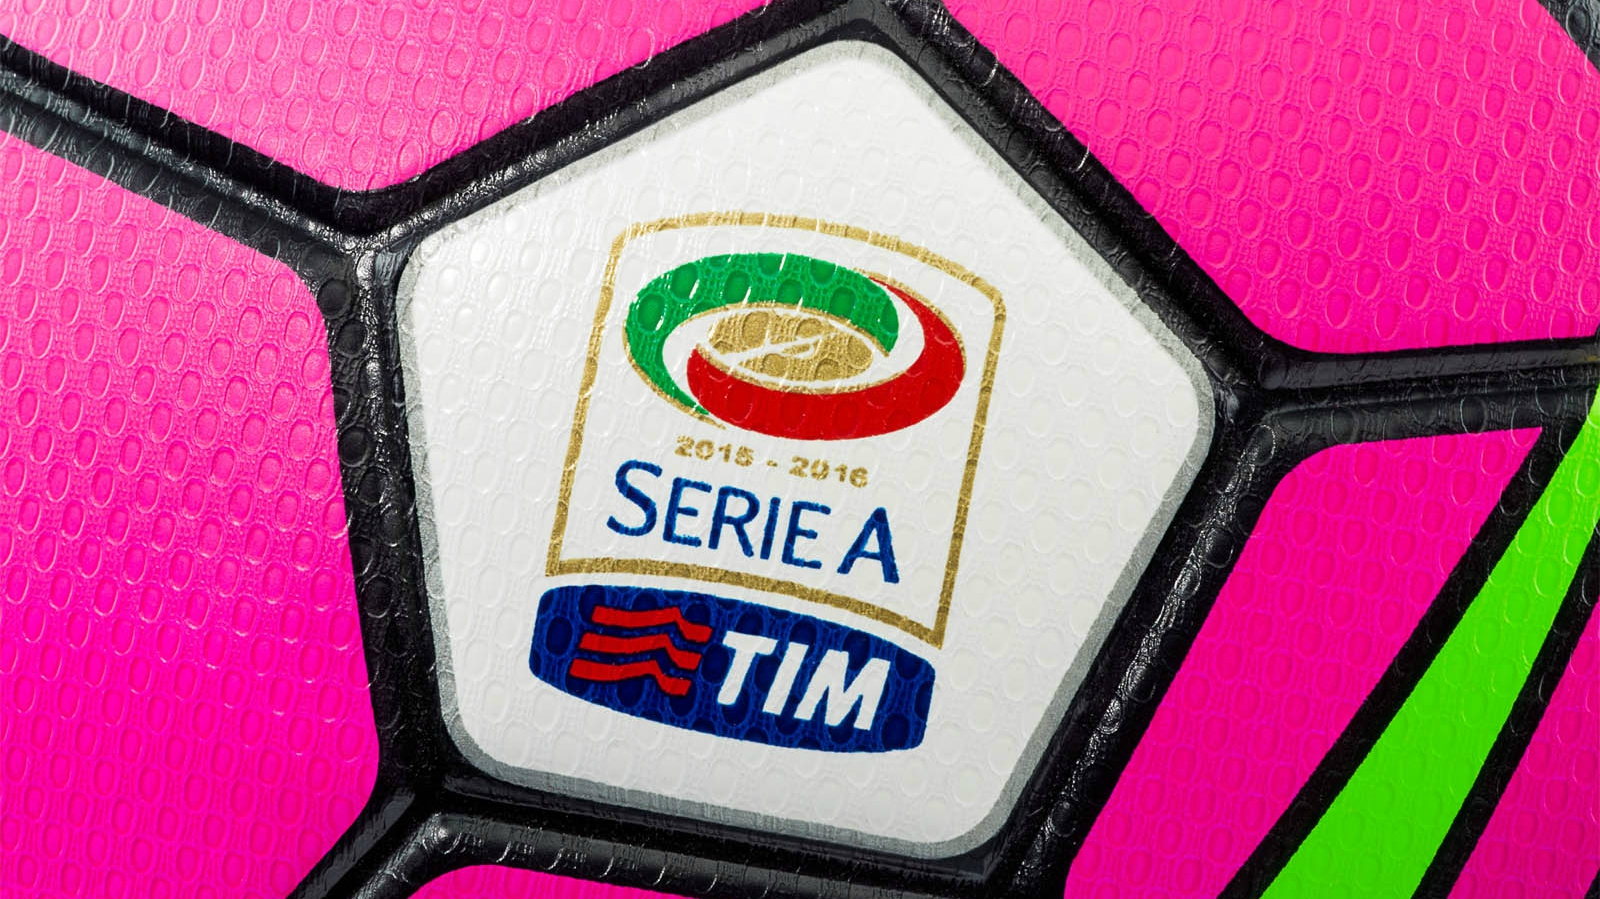 Serie A: BeIN SPORTS Renews Serie A TV Rights In US Through 2018